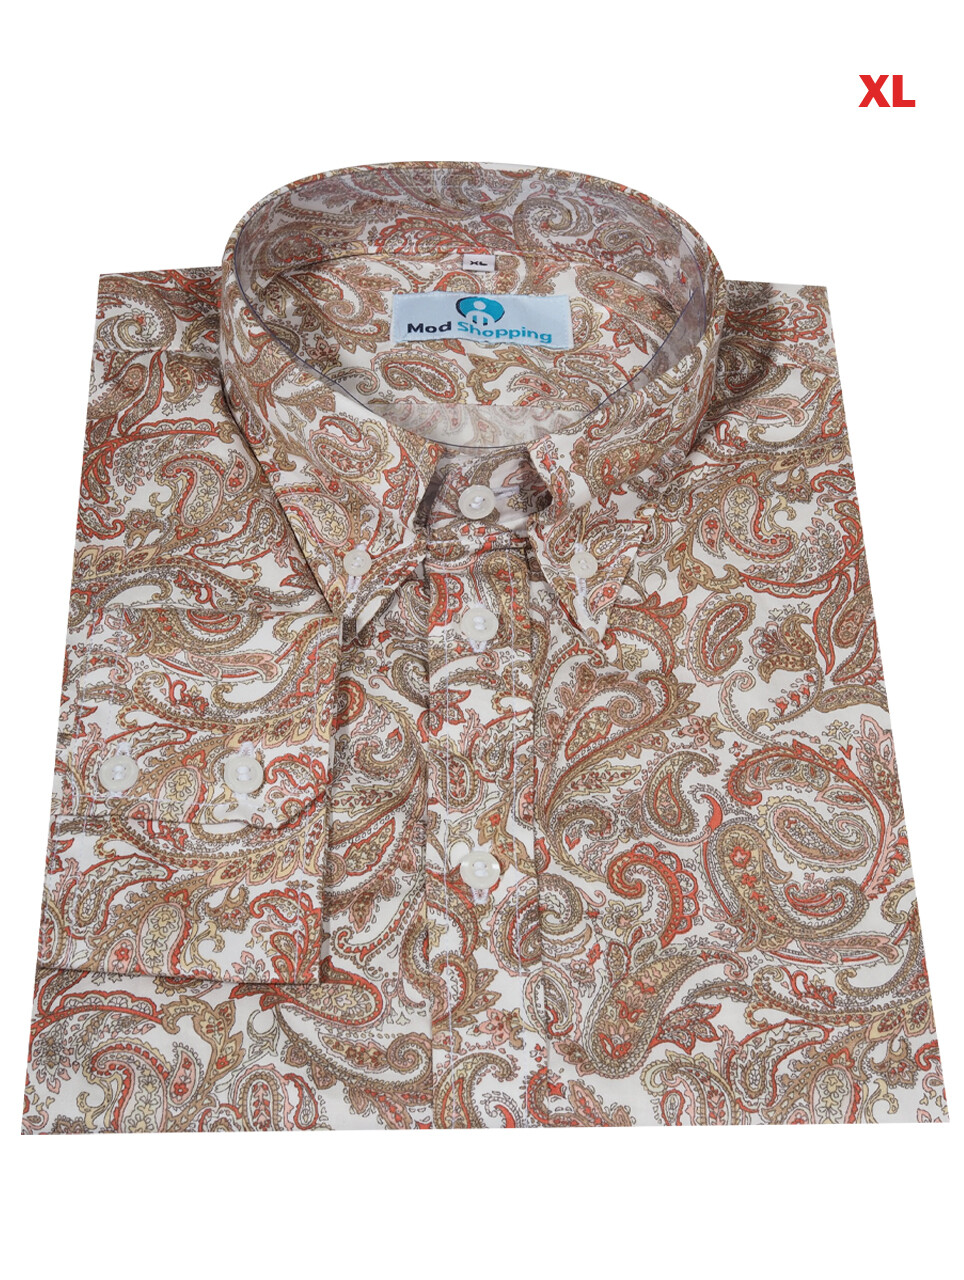 This Shirt Only This Shirt Only Paisley Off White Multi-Color Shirt